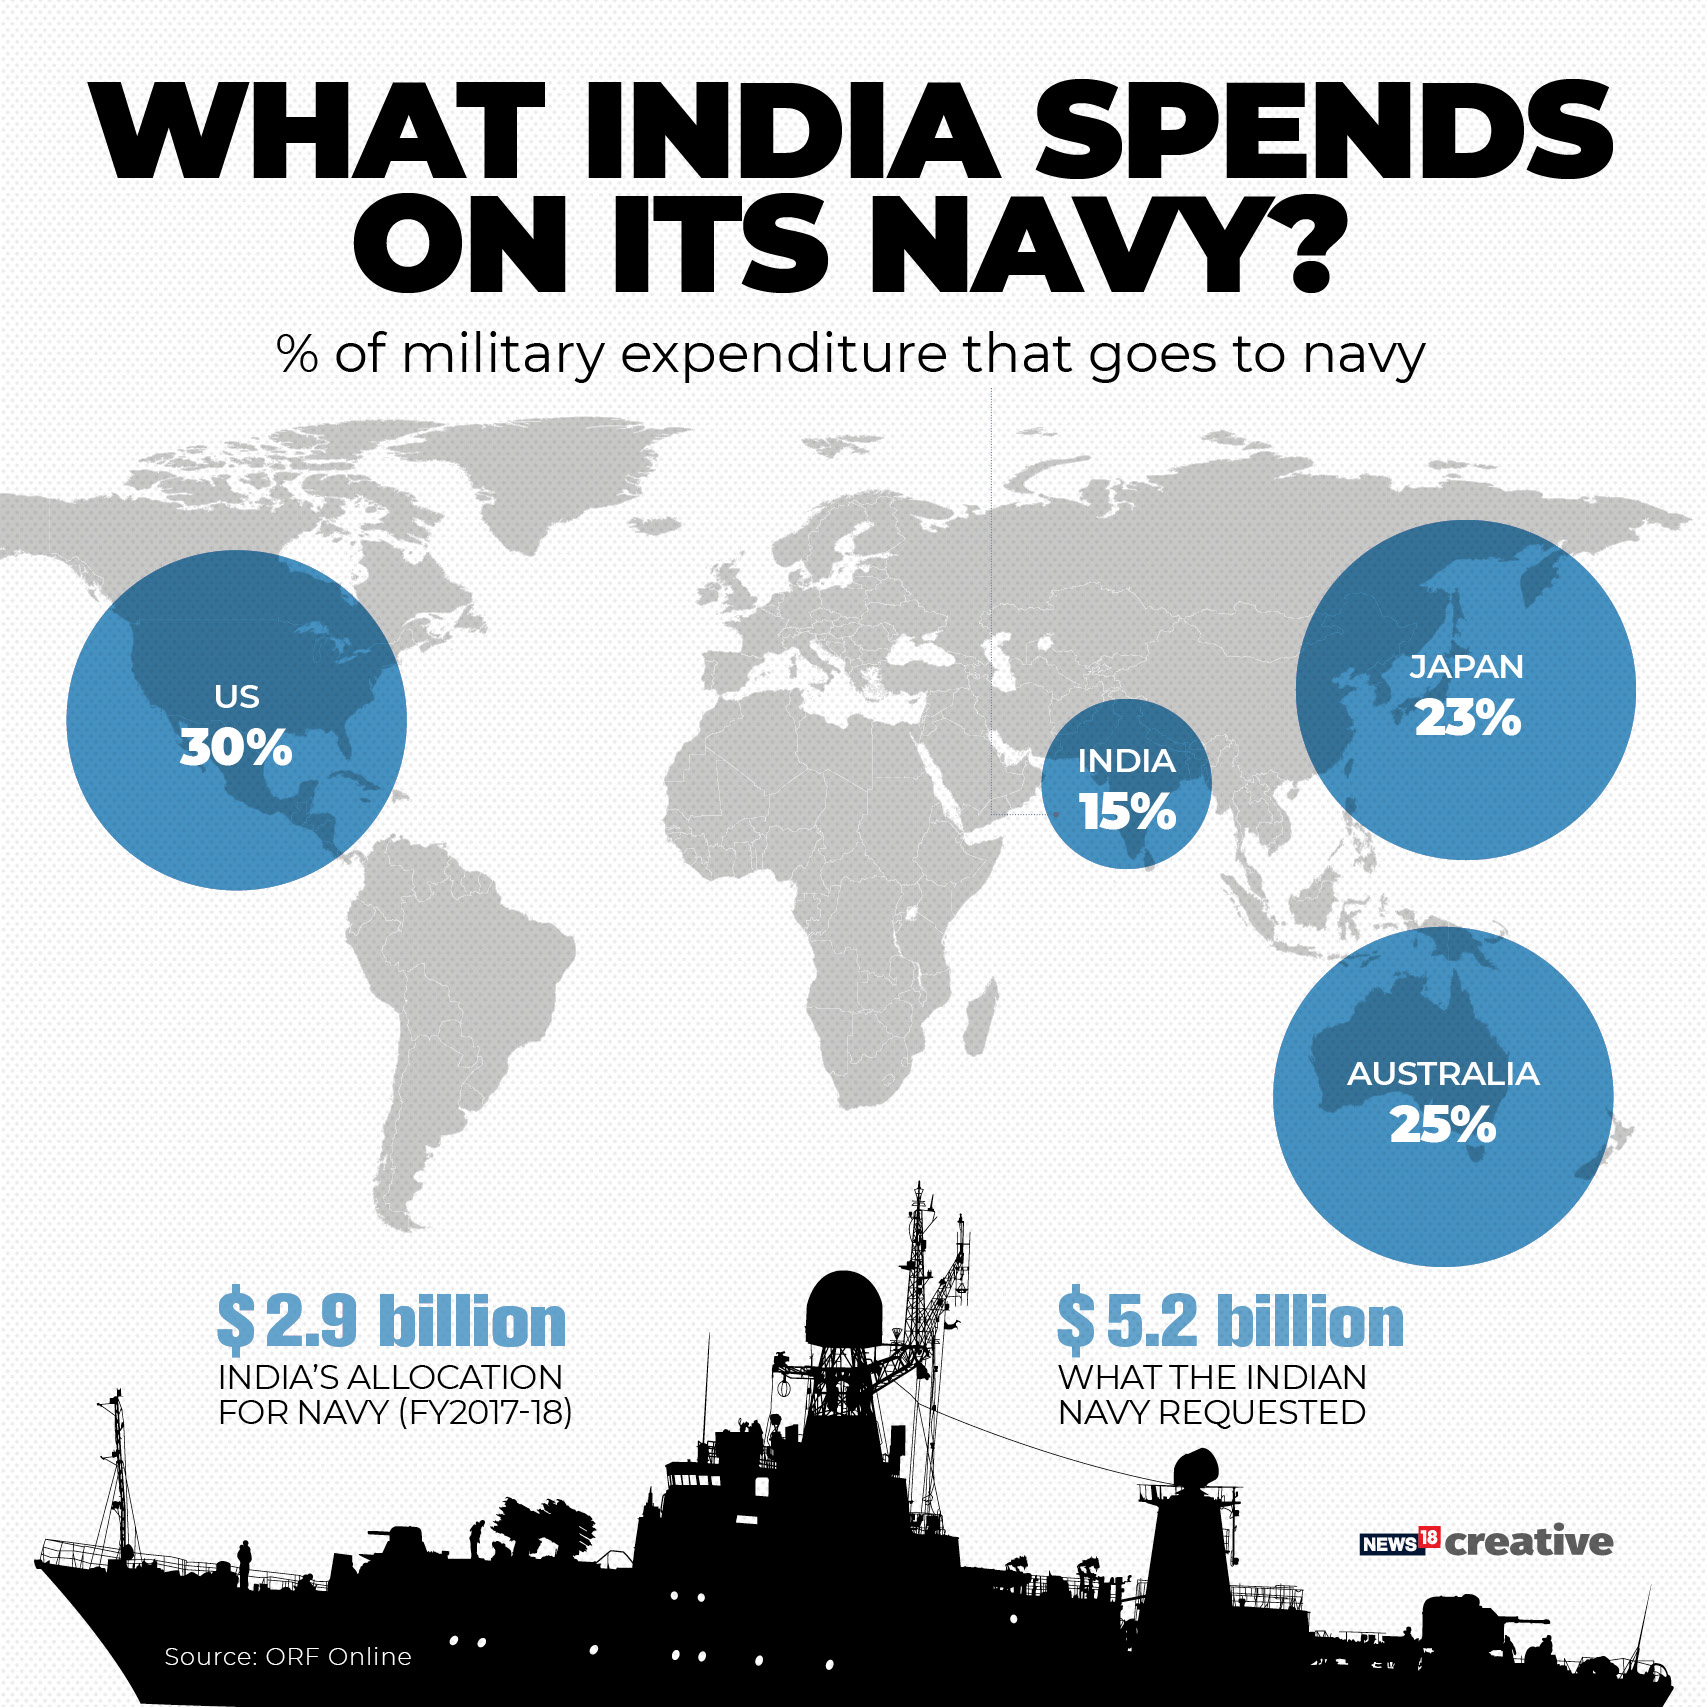 How much does India spend on its Navy?